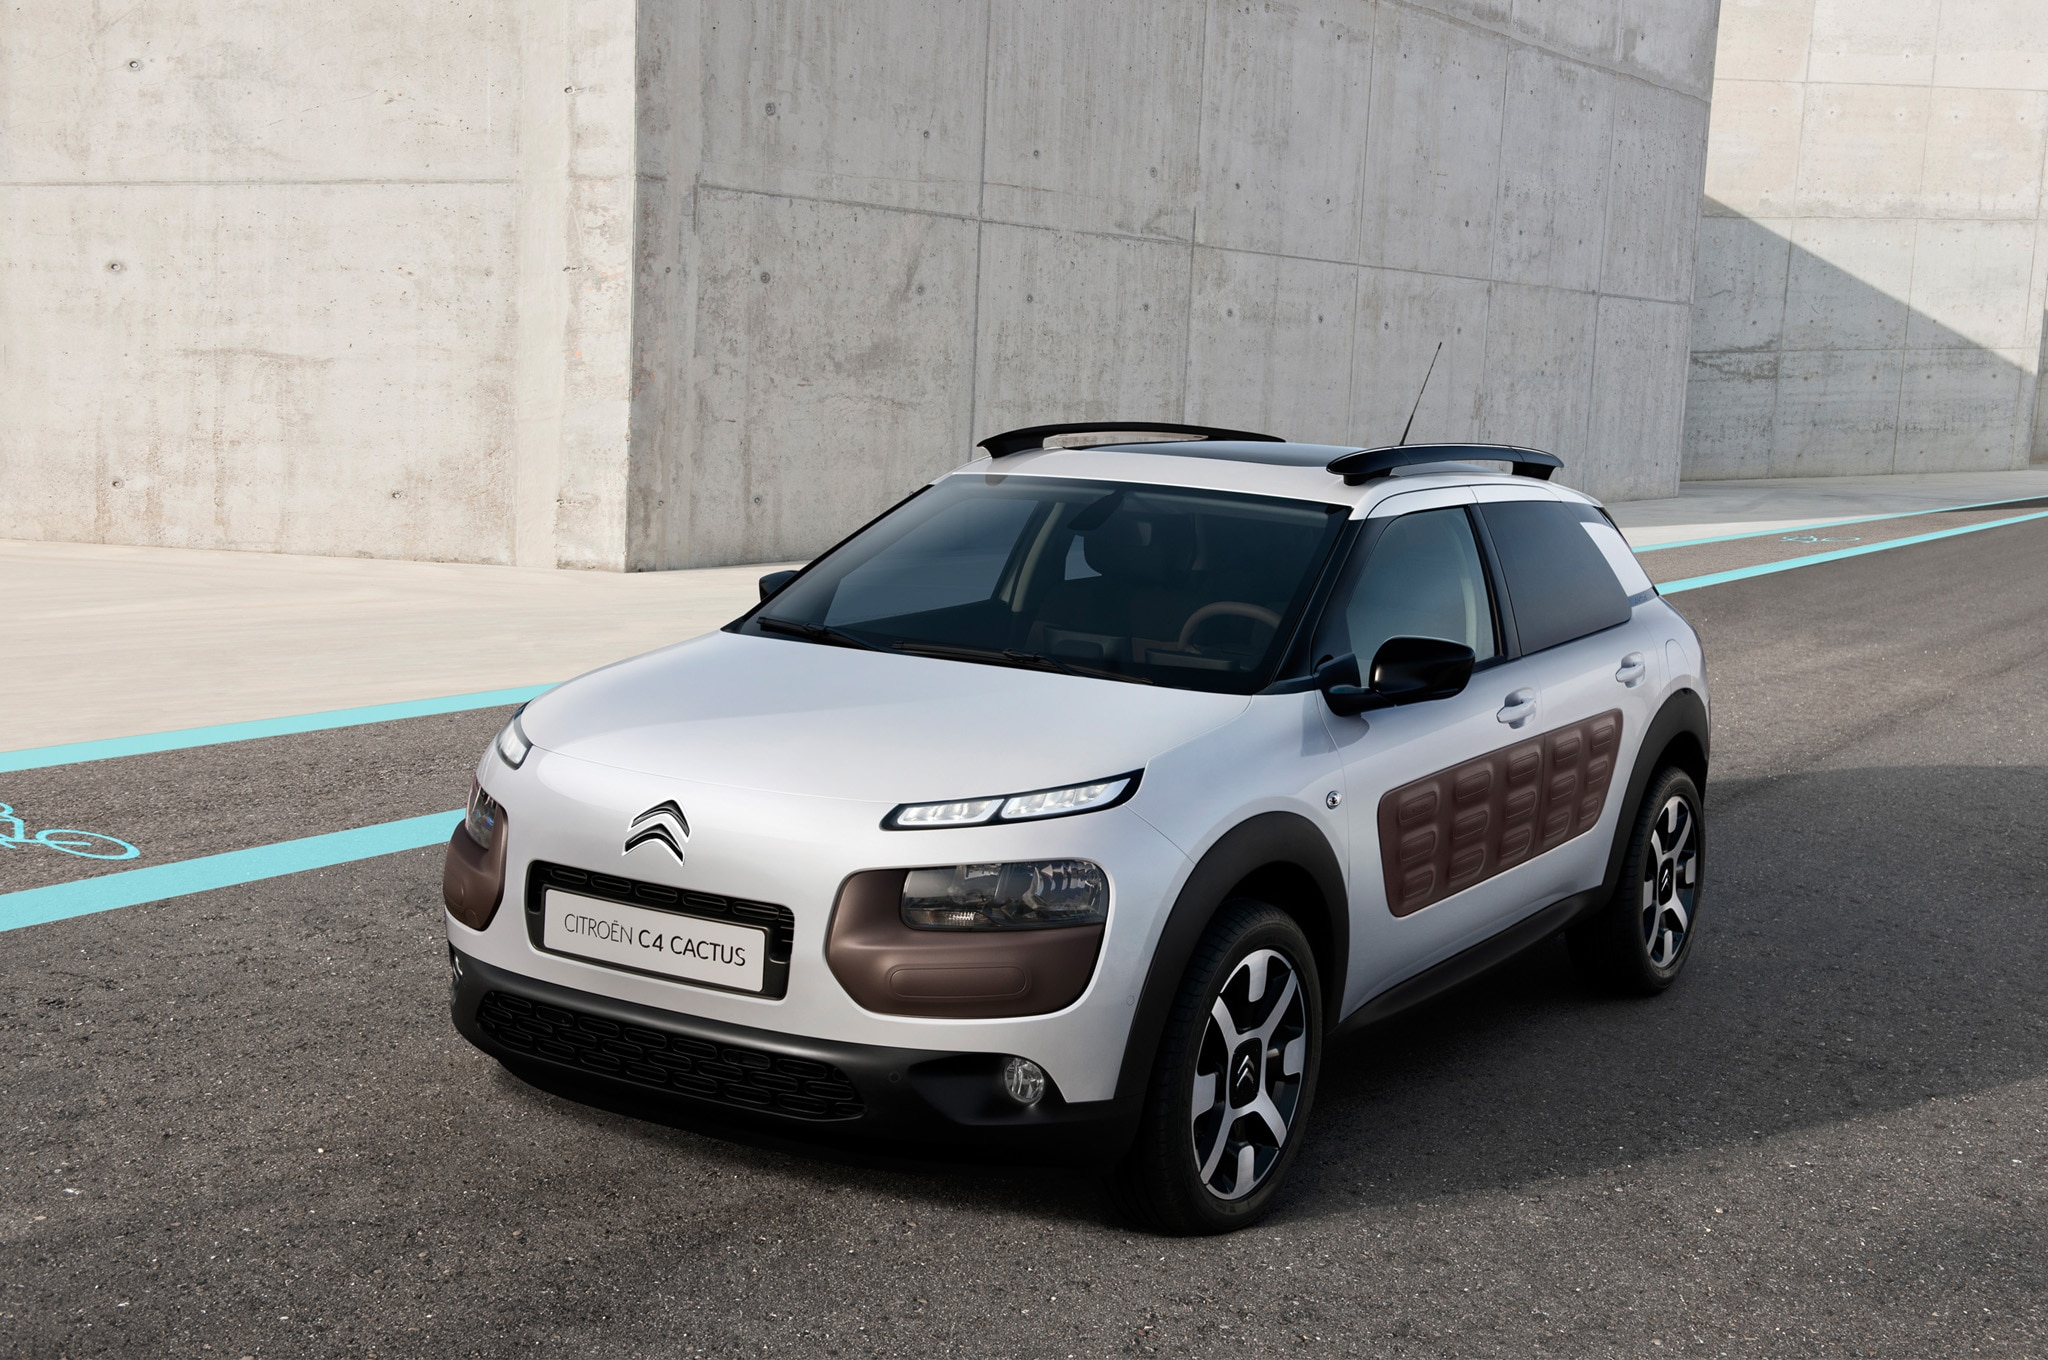 Citroen C4 Cactus Front Three Quarter 241